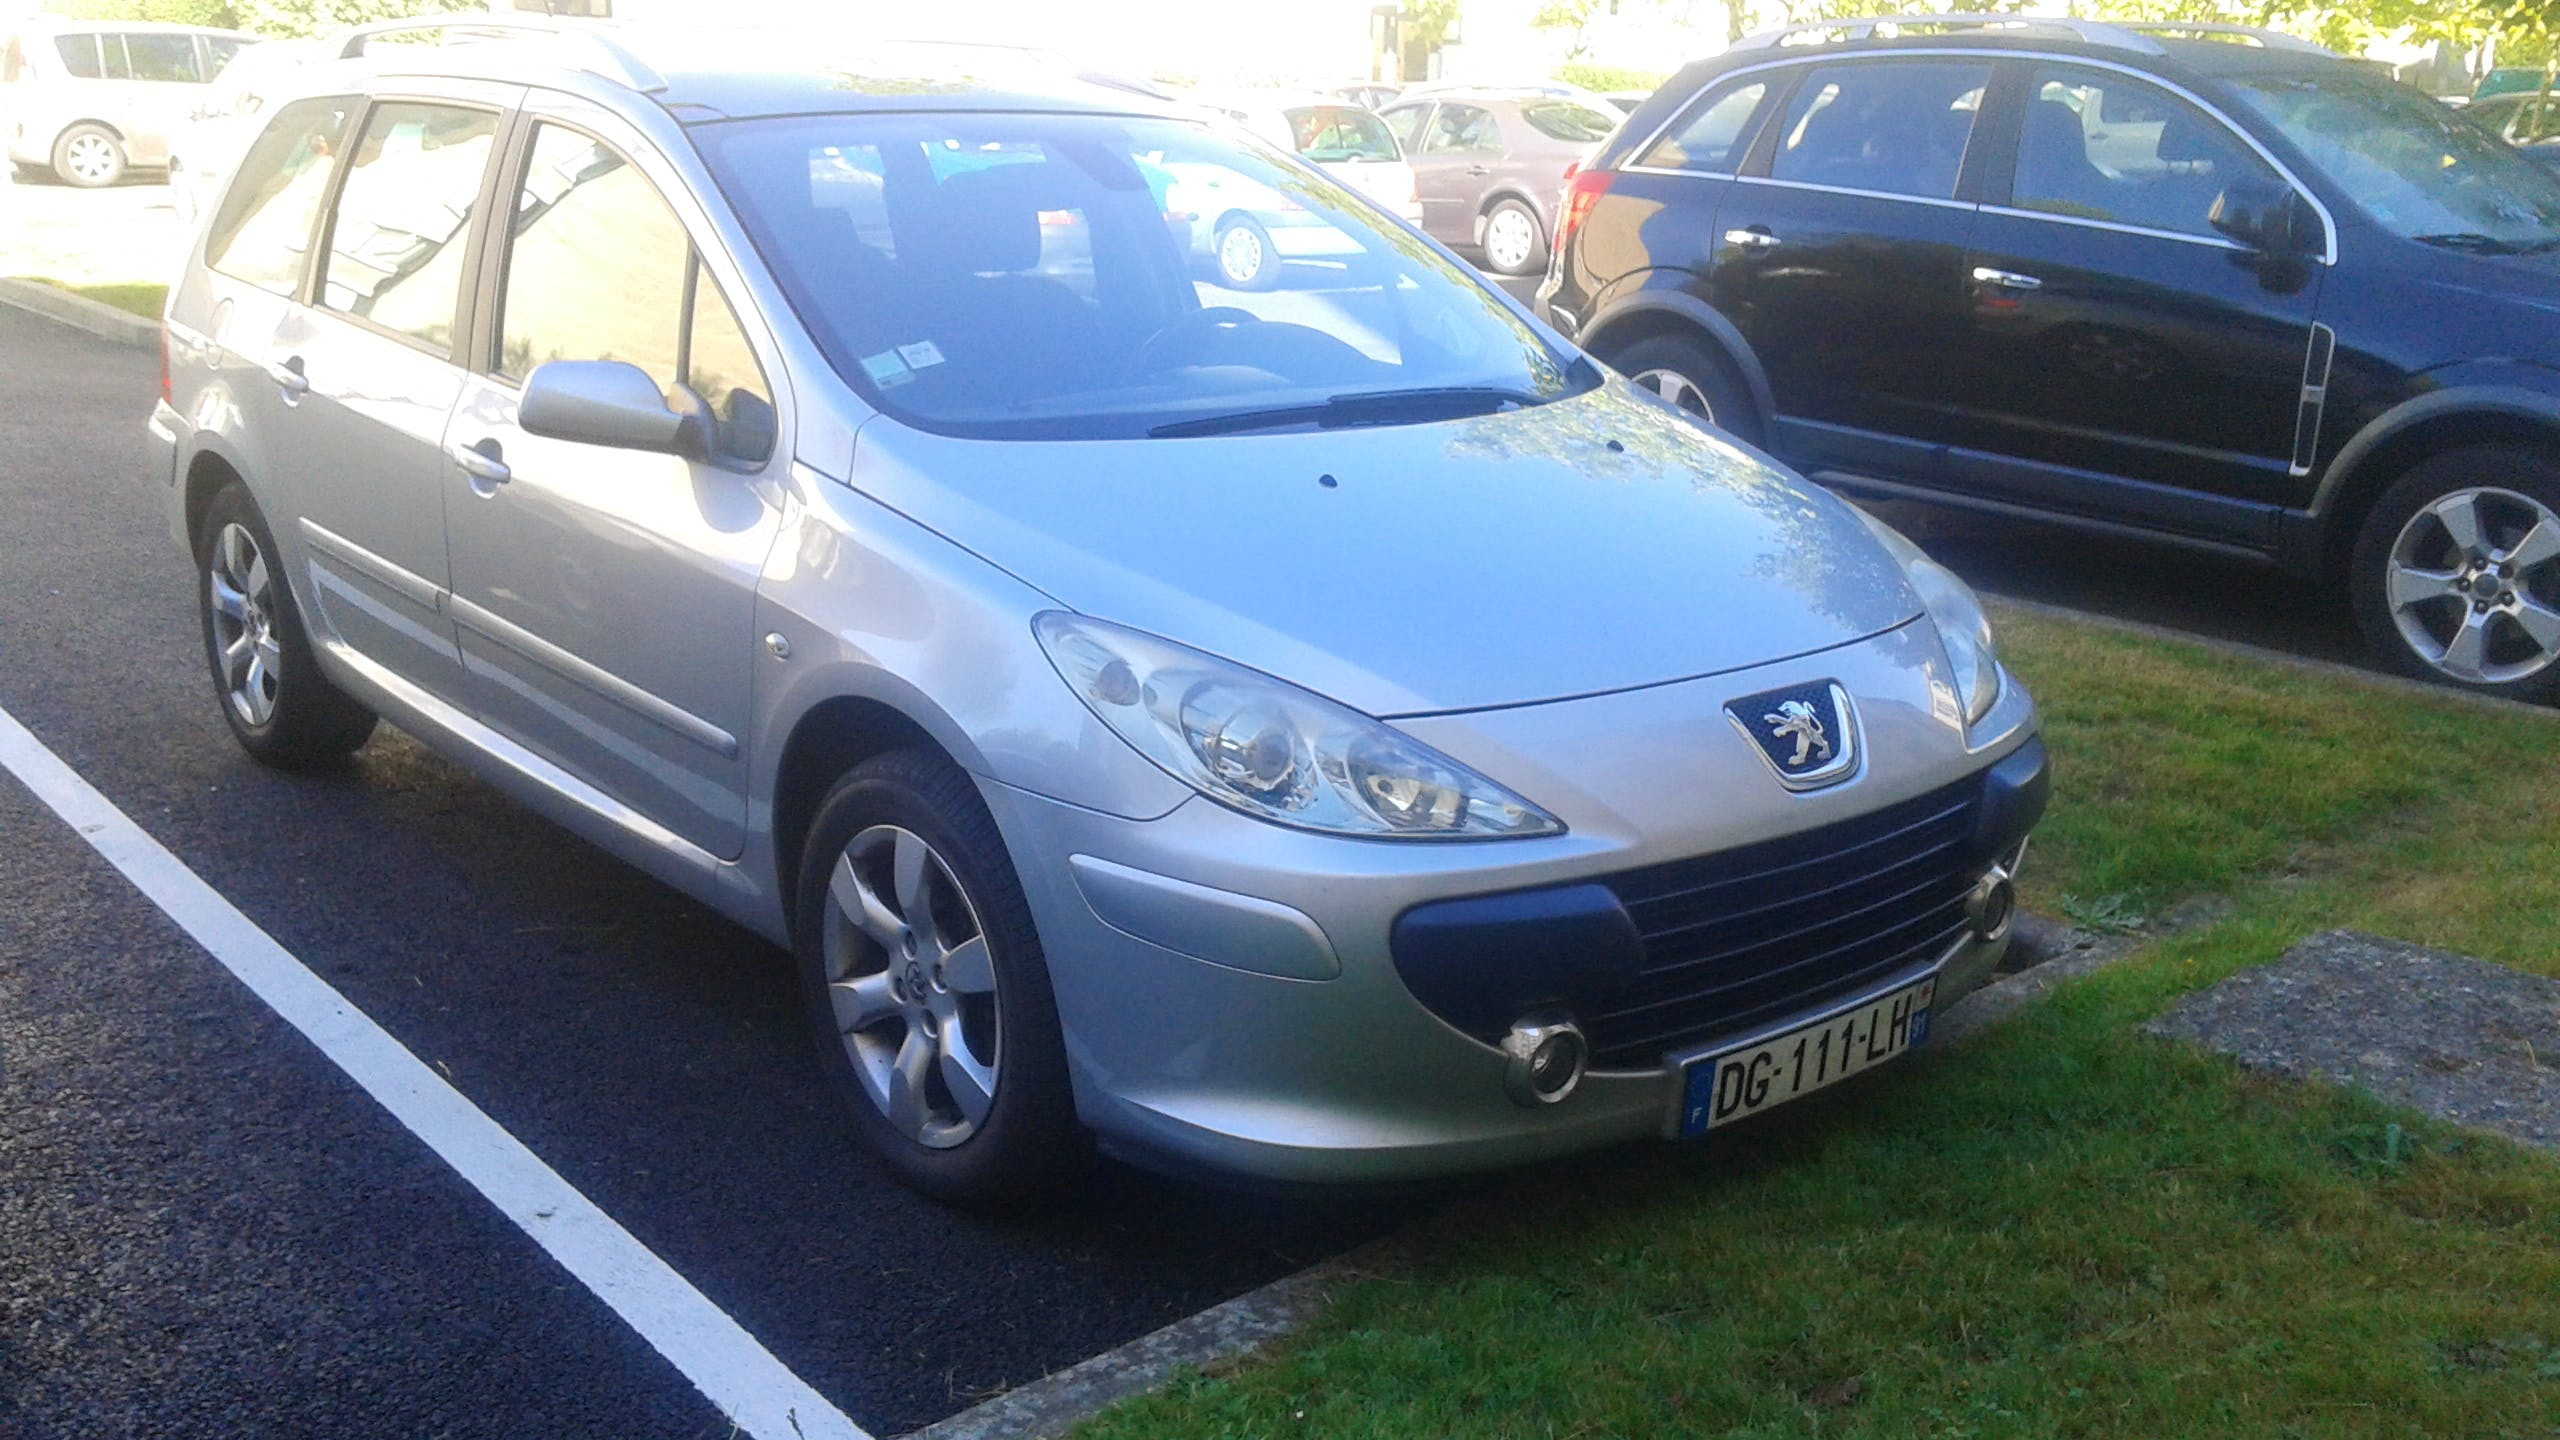 location peugeot 307 sw 2006 diesel automatique 7 places  u00e0 paris  place de barcelone